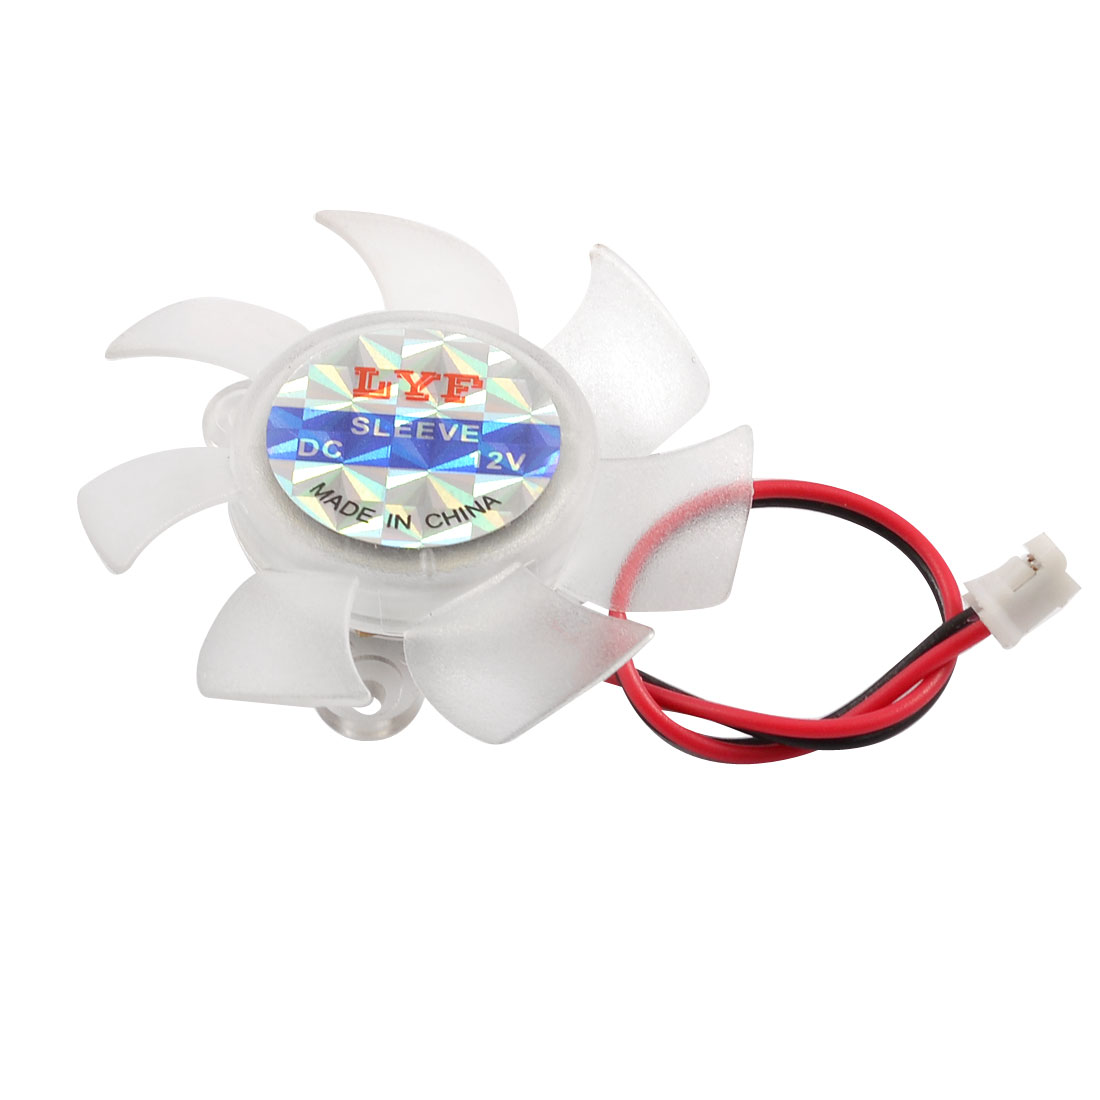 Sleeve Bearing 50mm 12V GPU VGA Video Card Cooler Cooling Fan